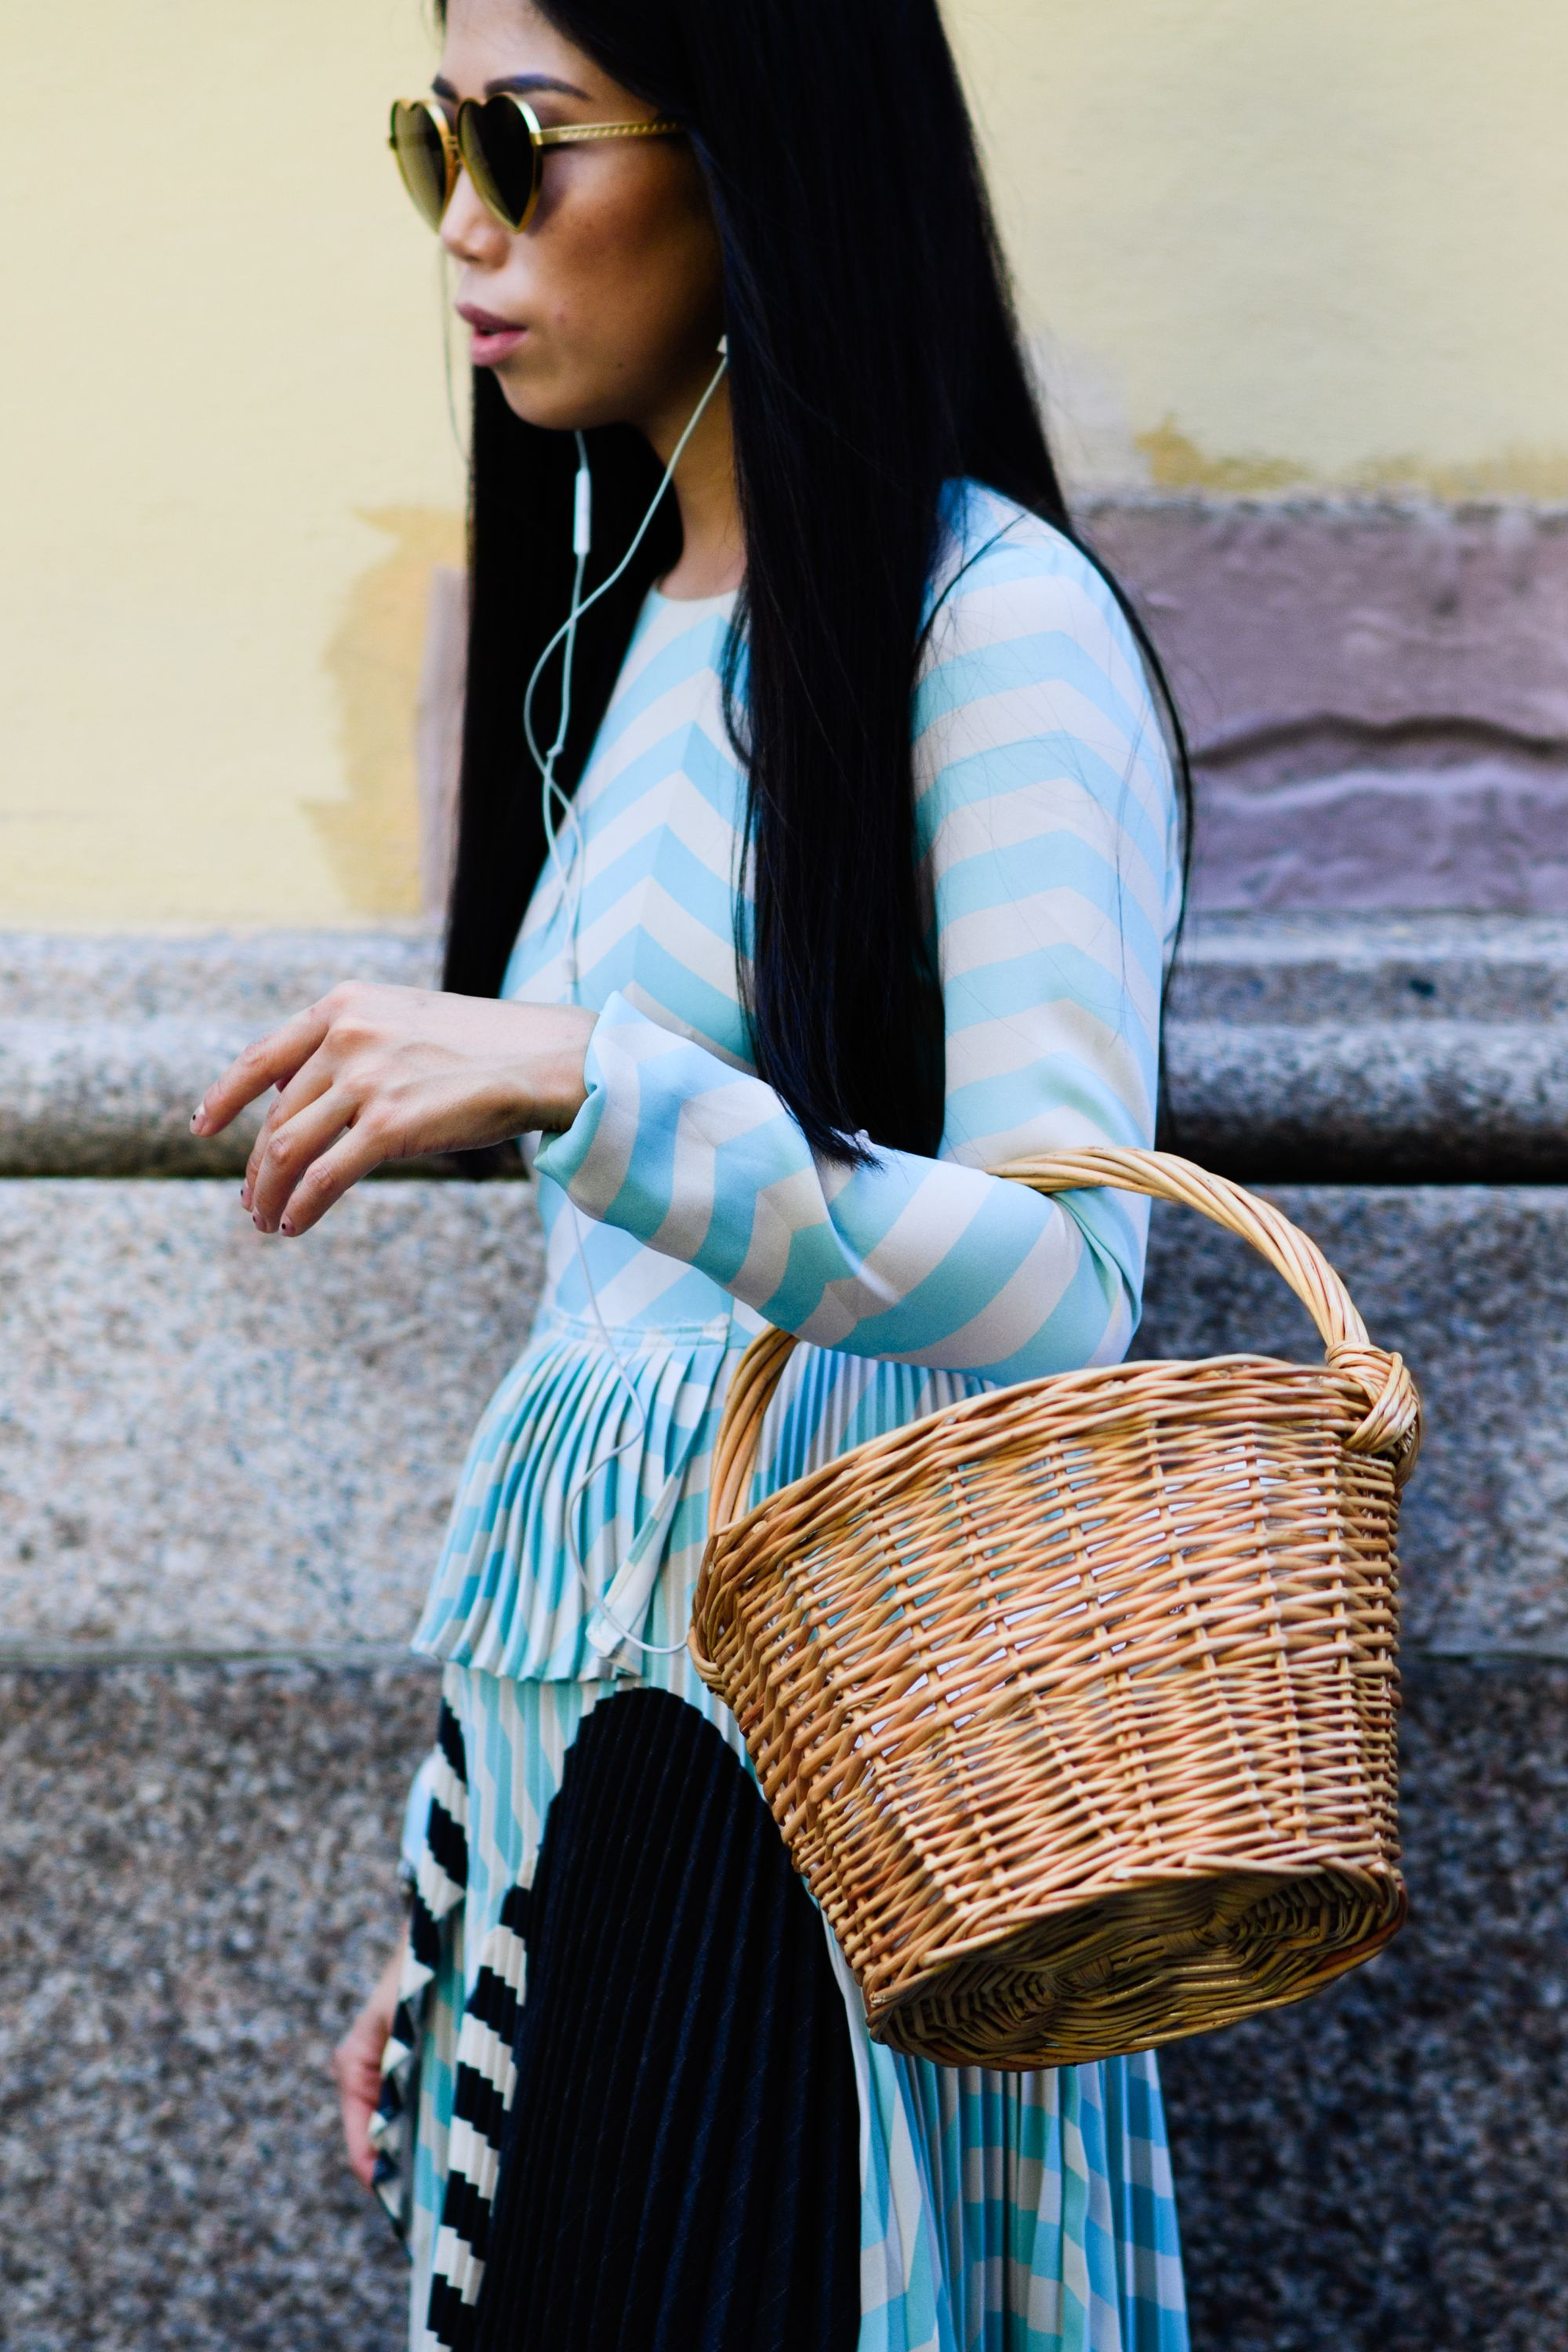 """<p>On the handbag front, Aiken is a fan of the city basket. """"<strong data-redactor-tag=""""strong"""" data-verified=""""redactor"""">It's one of those classic summer essentials, but it has become more structured and refined for the city streets</strong>. <a href=""""https://www.net-a-porter.com/us/en/Shop/Designers/Muun?pn=1&amp&#x3B;npp=60&amp&#x3B;image_view=product&amp&#x3B;dScroll=0"""" data-tracking-id=""""recirc-text-link"""">Muun</a> and <a href=""""https://www.net-a-porter.com/us/en/Shop/Designers/Cult_Gaia?pn=1&amp&#x3B;npp=60&amp&#x3B;image_view=product&amp&#x3B;dScroll=0"""" data-tracking-id=""""recirc-text-link"""">Cult Gaia</a> are two of our favorite brands!""""</p>"""